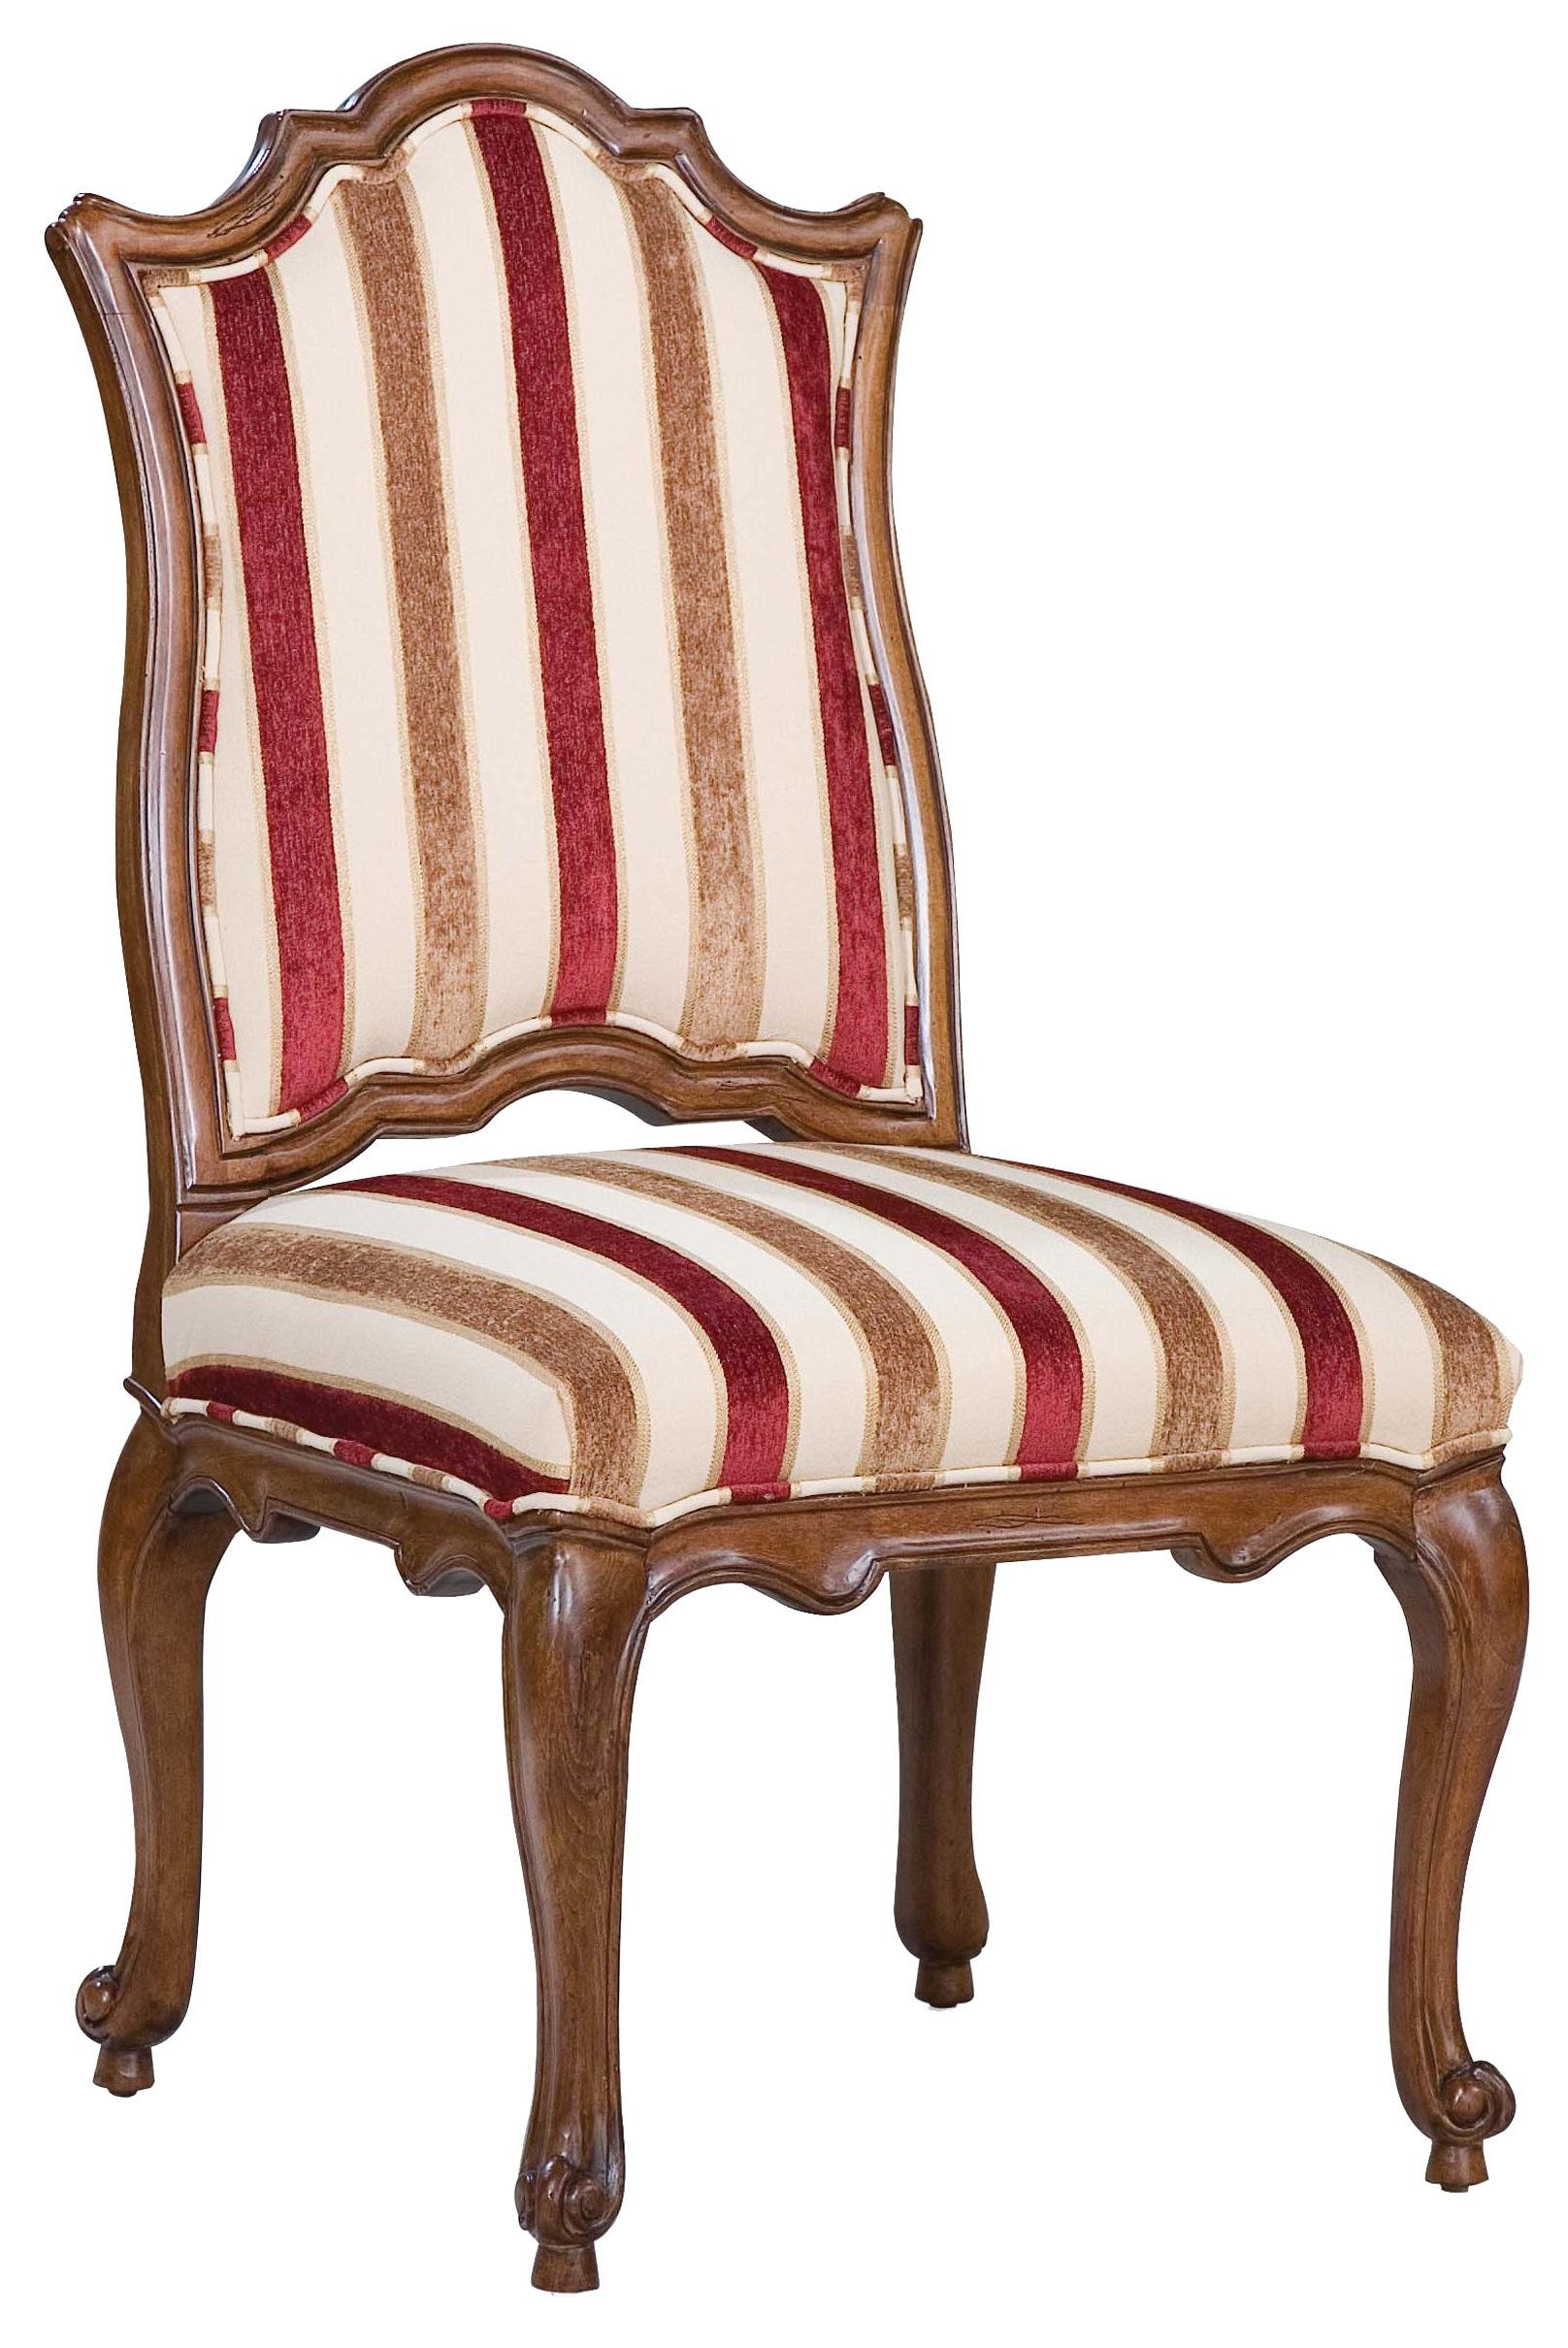 victorian accent chair adirondack cushions target fairfield chairs side with curved